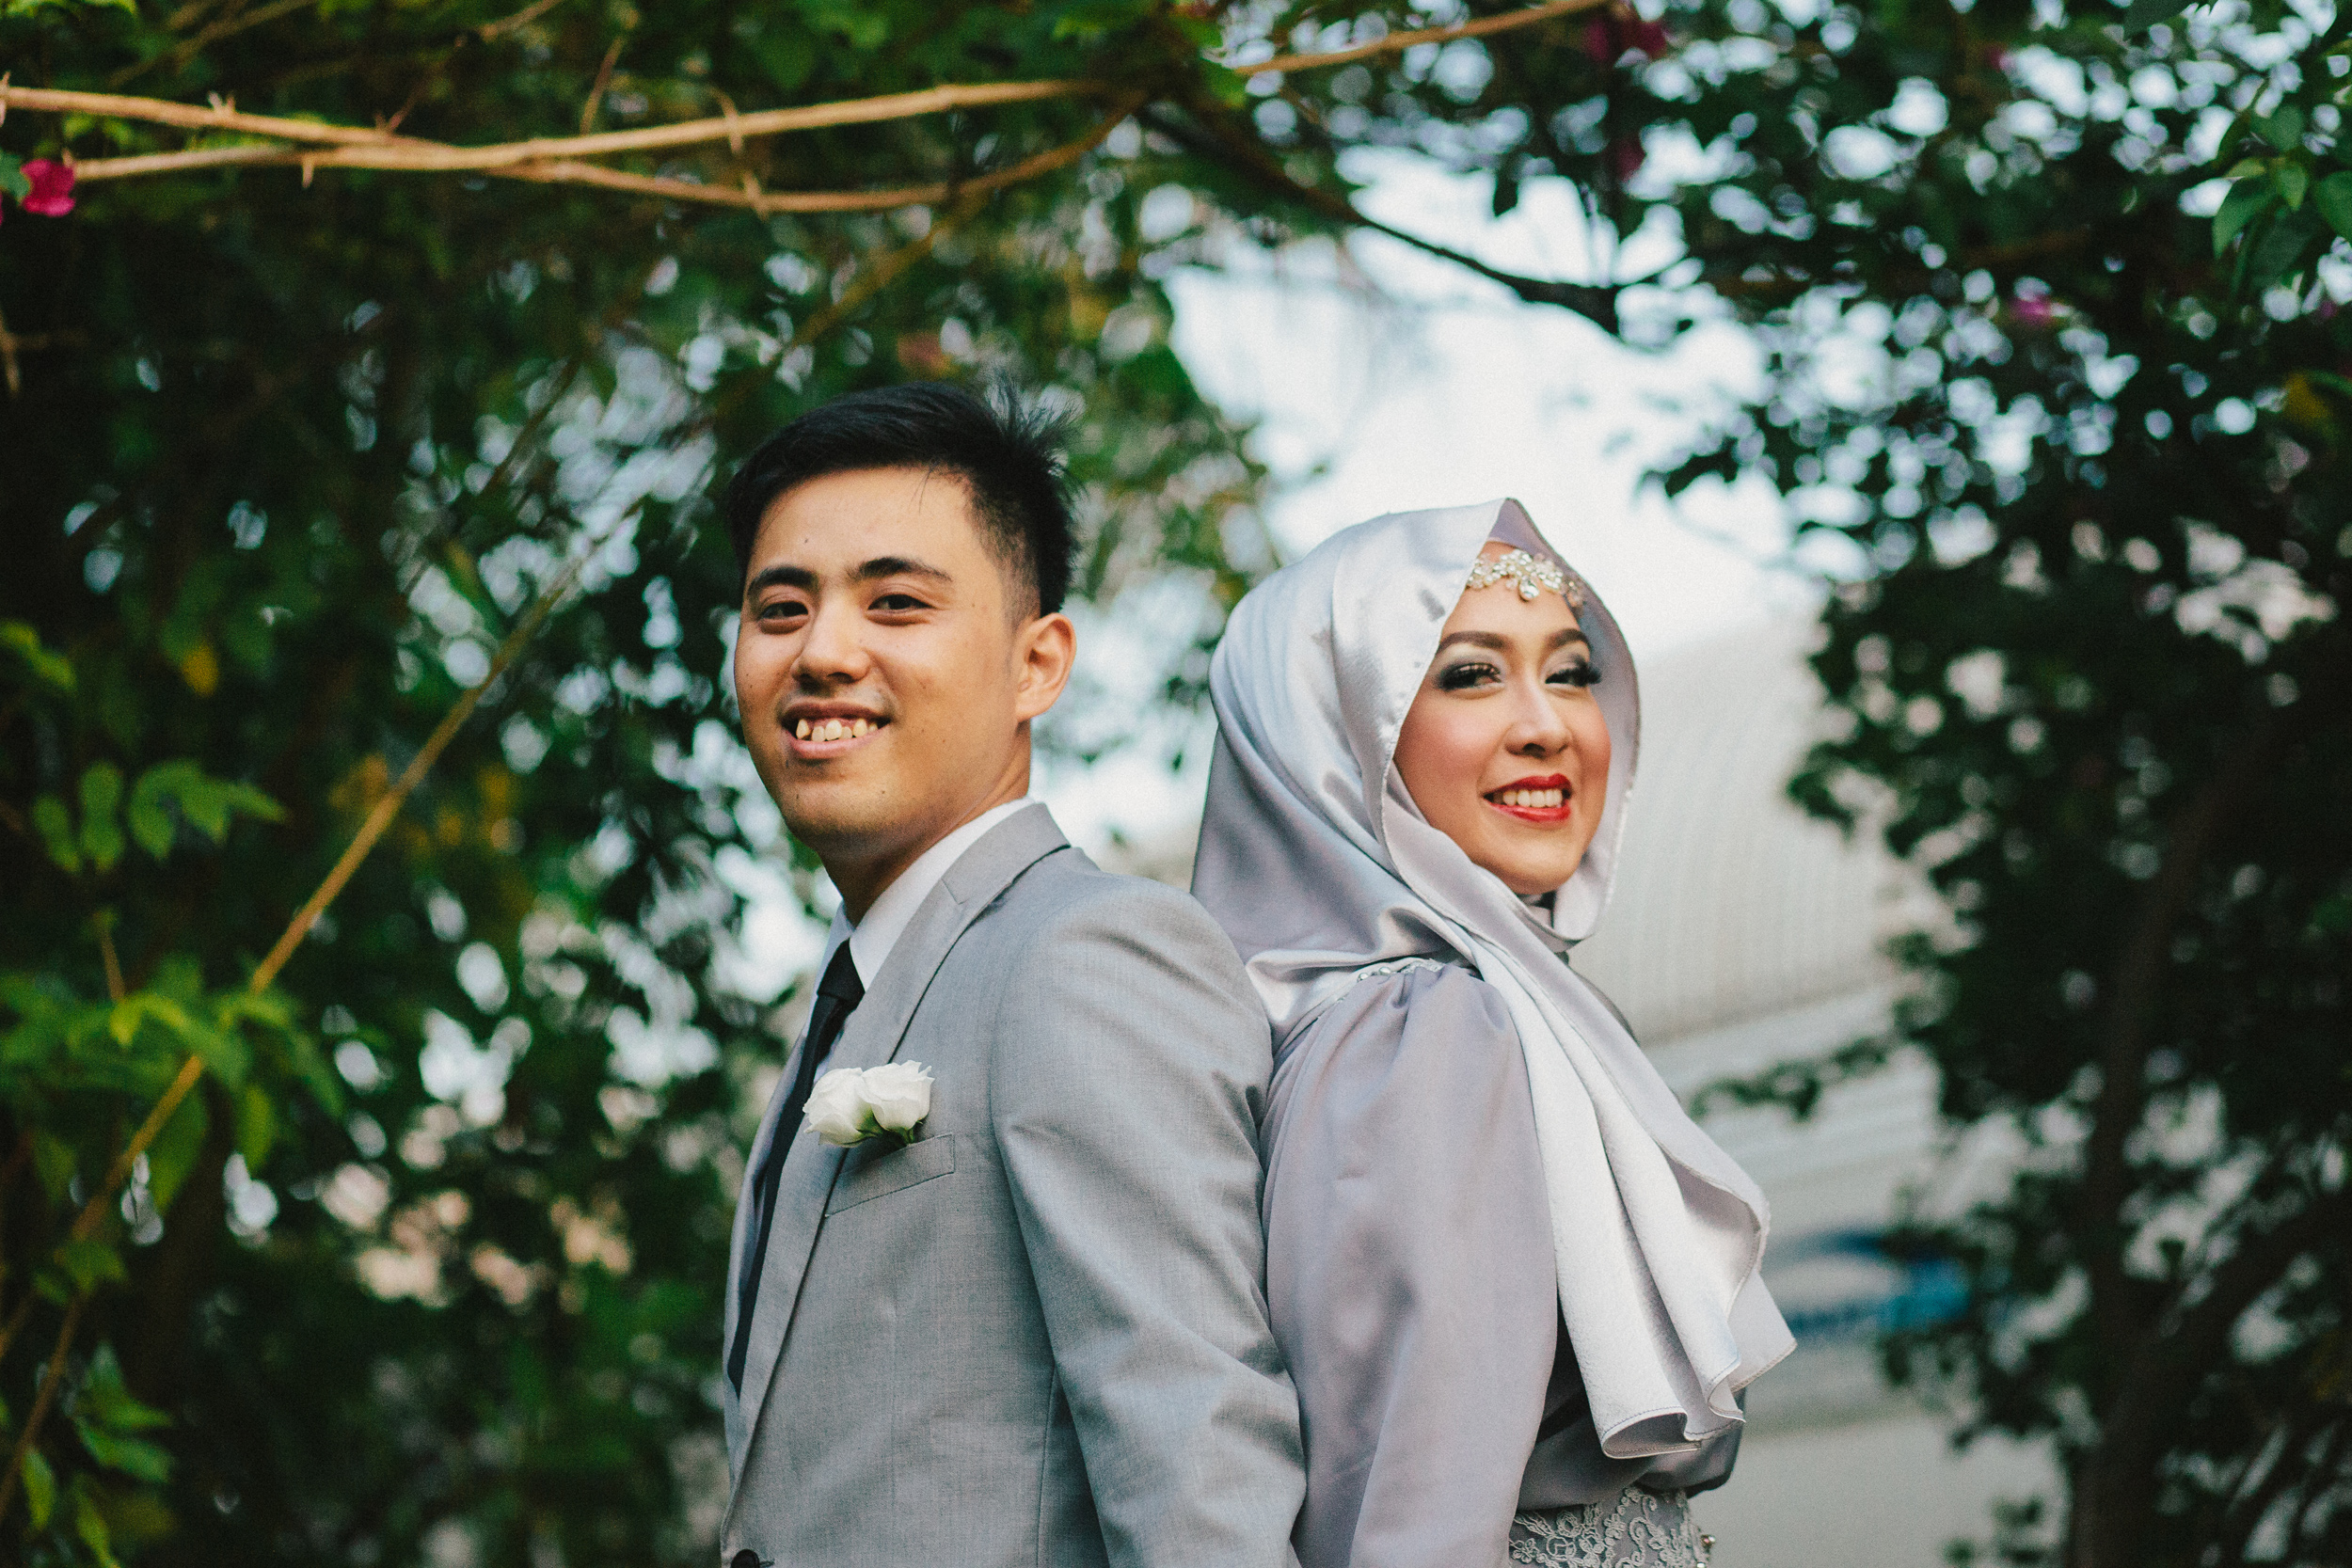 singapore-wedding-photographer-wemadethese-aisyah-helmi-62.jpg